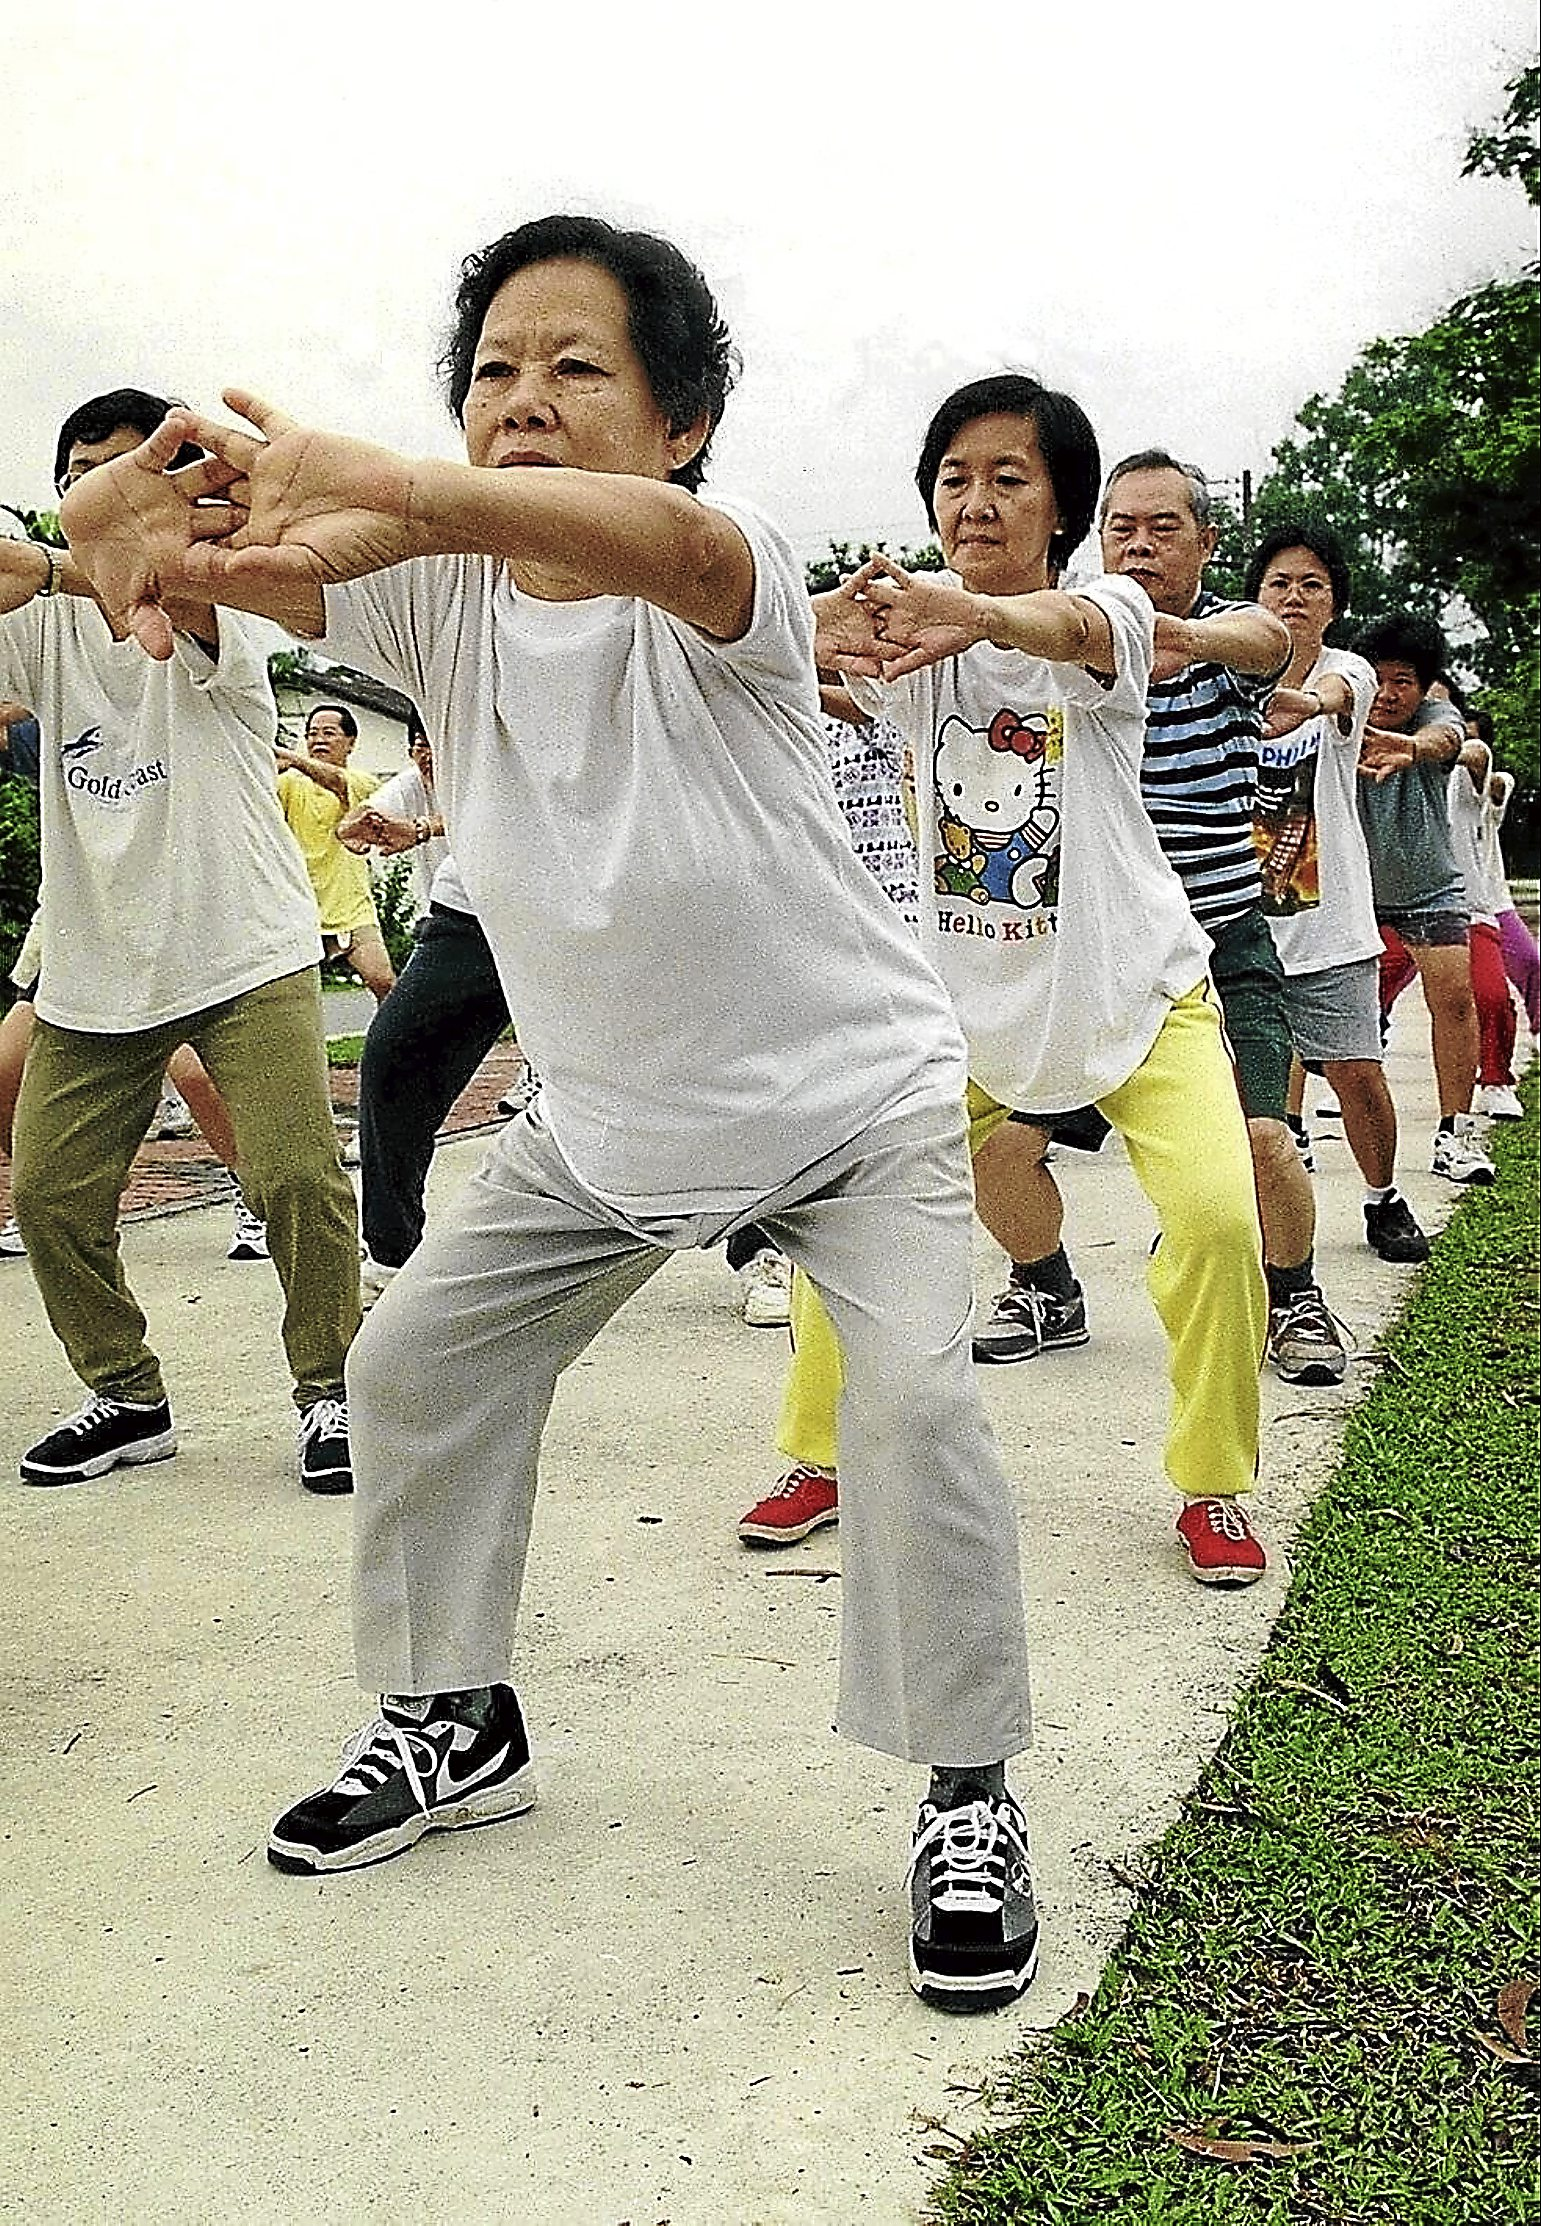 NG AH NUI (IN FRONT) 68, ONE OF THE MANY WHO TOOK PART IN A MORNING EXERCISE GROUP WHO START EARLY IN THE MORNING IN THE SS3 COMMUNITY HALL PARK.